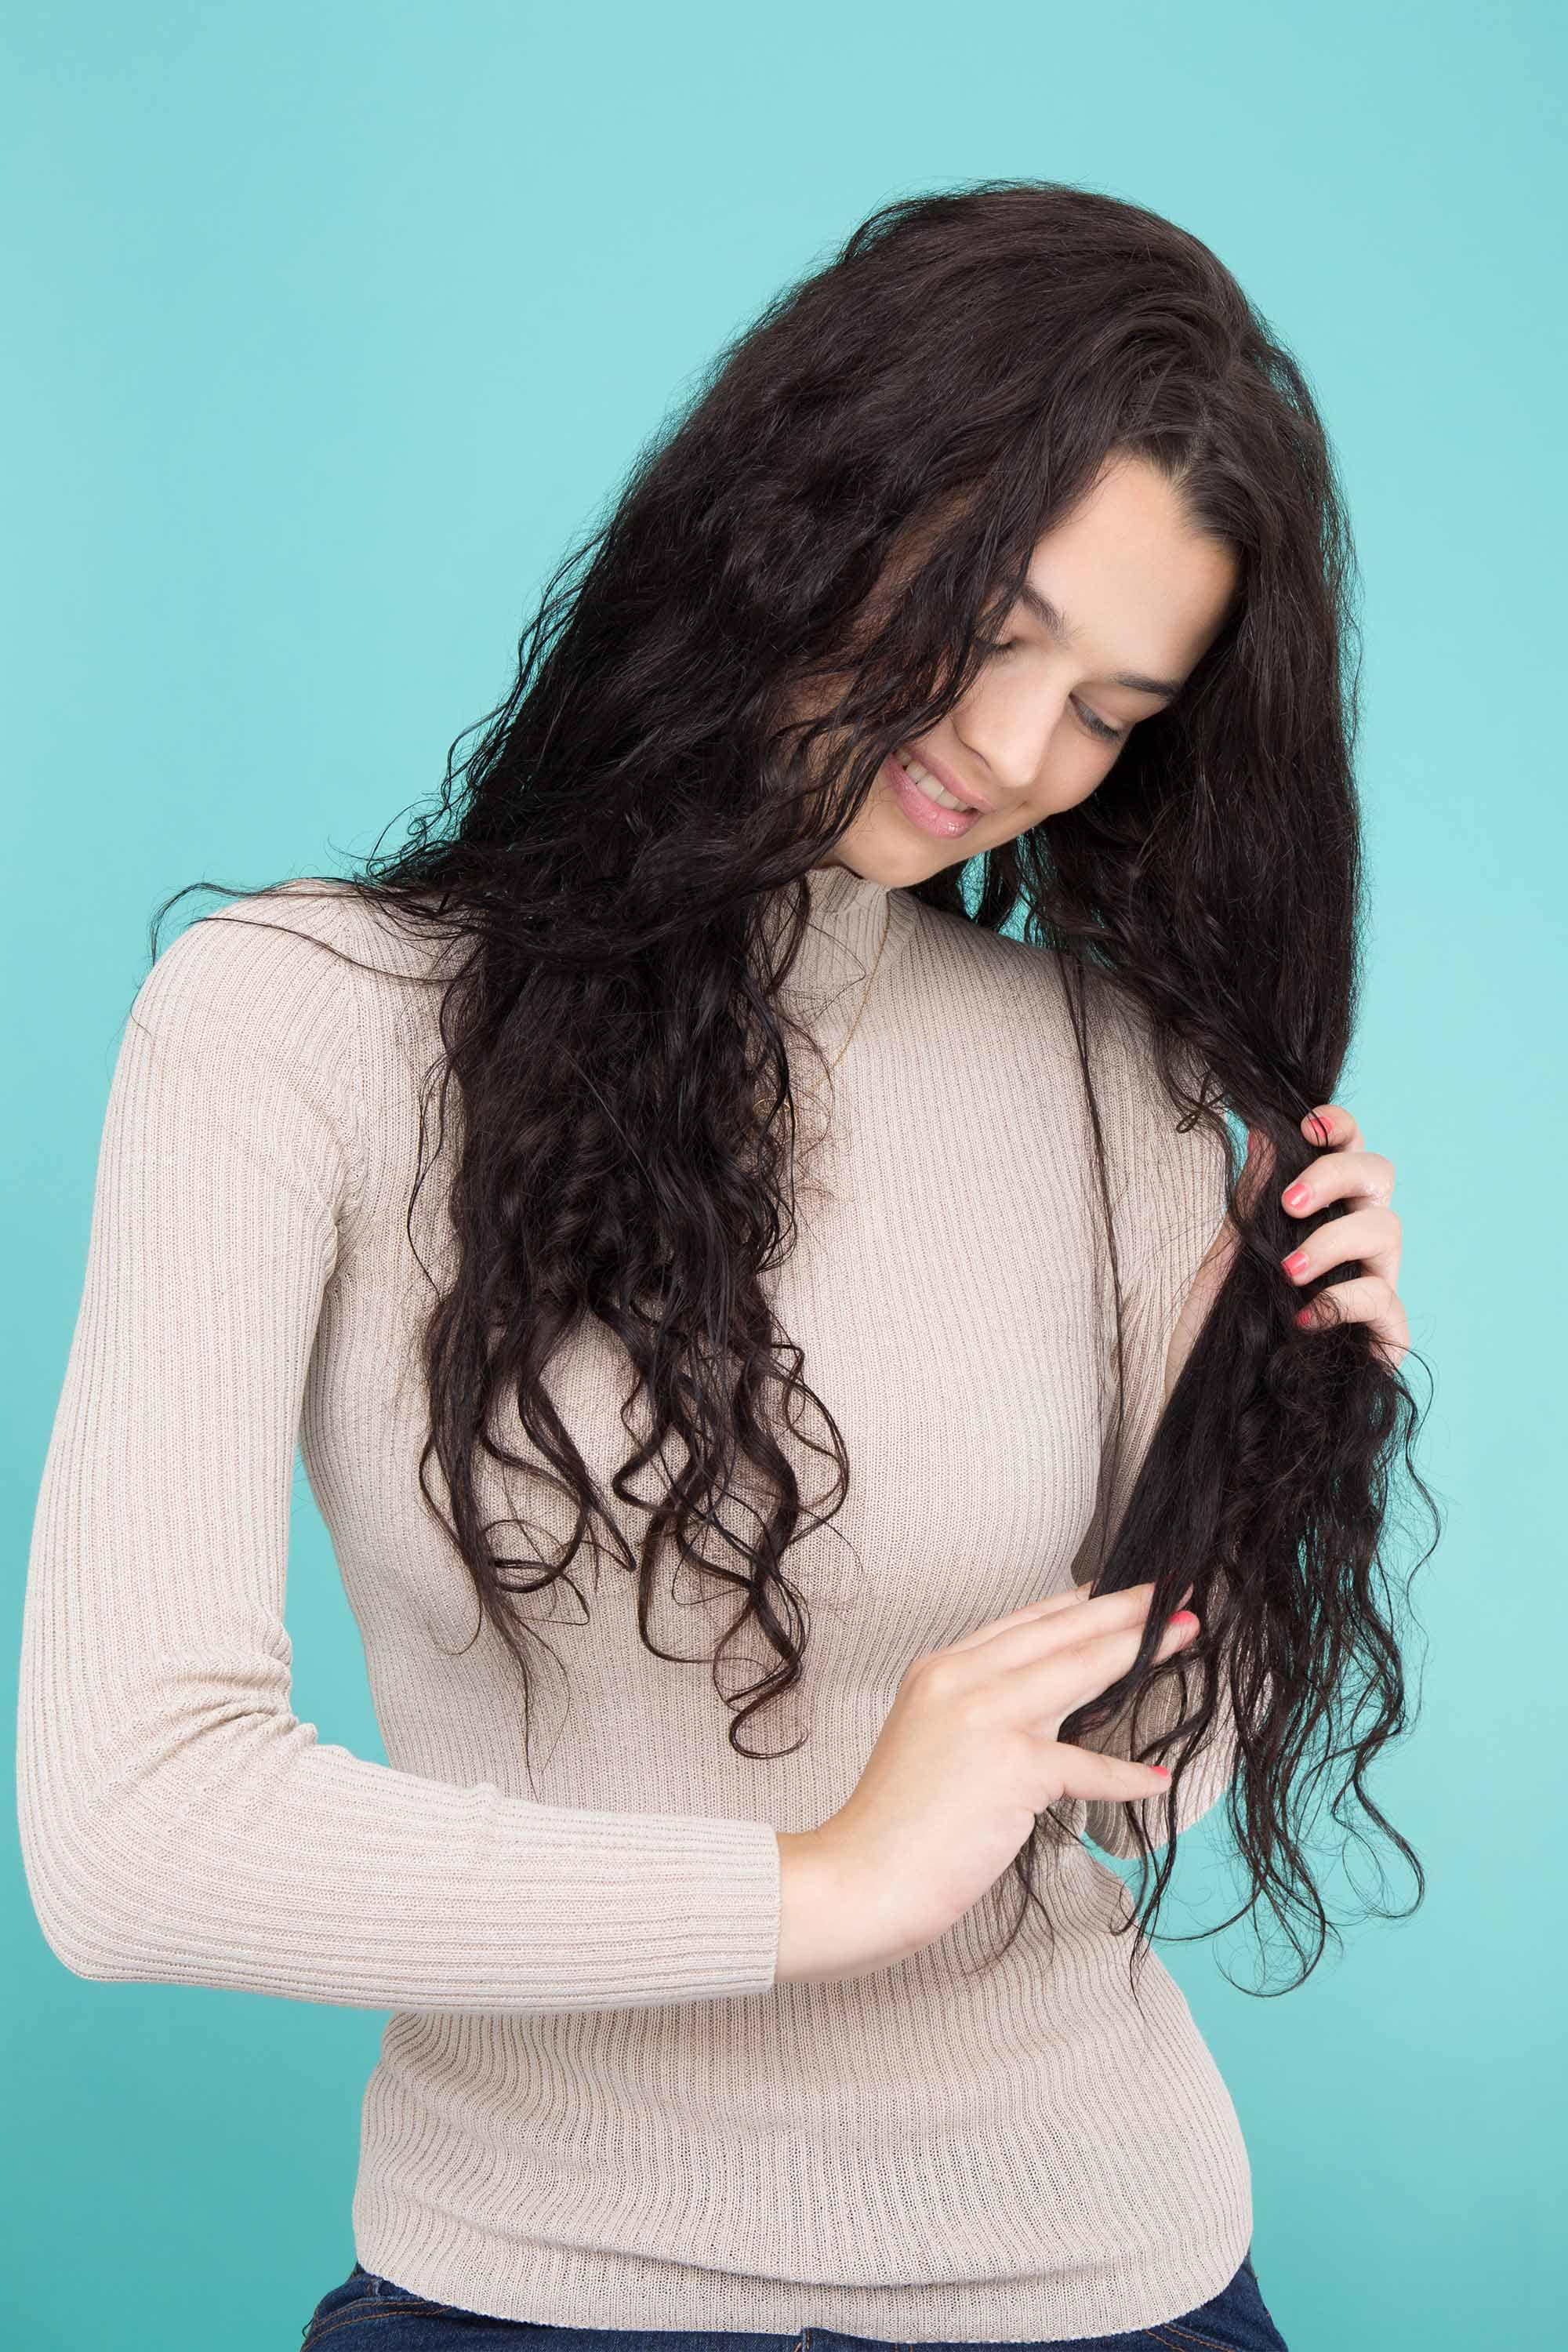 model with long dark brown curly hair looking at ends of hair